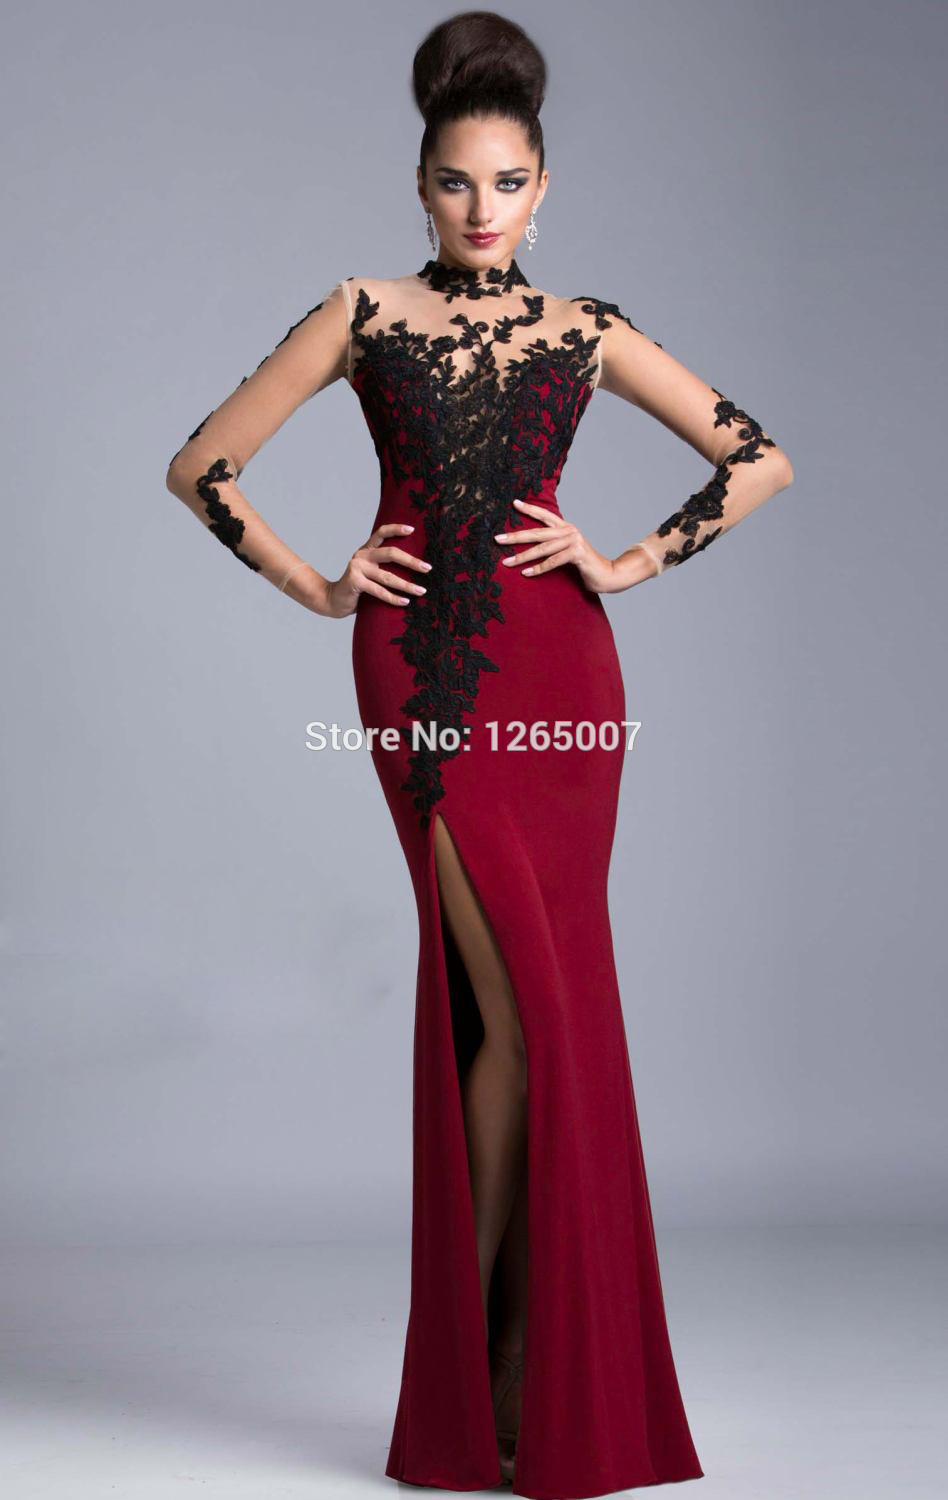 Aliexpress.com : Buy 2014 High Neck Long Sleeves Black Lace Beaded Red Wine Fitted Mermaid Mesh Back Prom Dresses Fashion Backless Long Dress from Reliable beaded lace dress suppliers on SFBridal